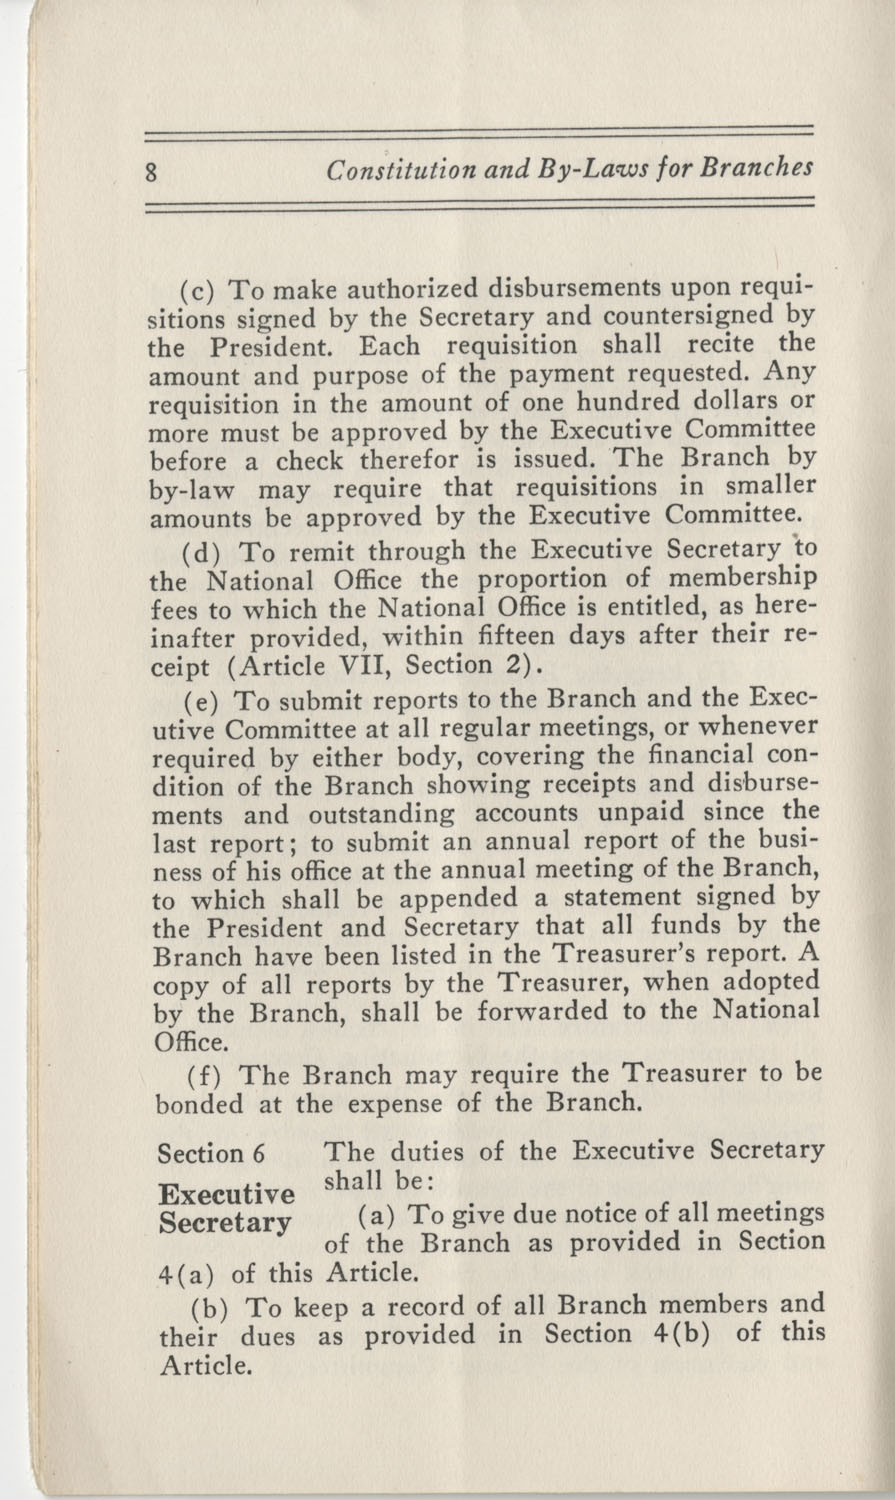 Constitutions and By-Laws, September 1960, Page 8